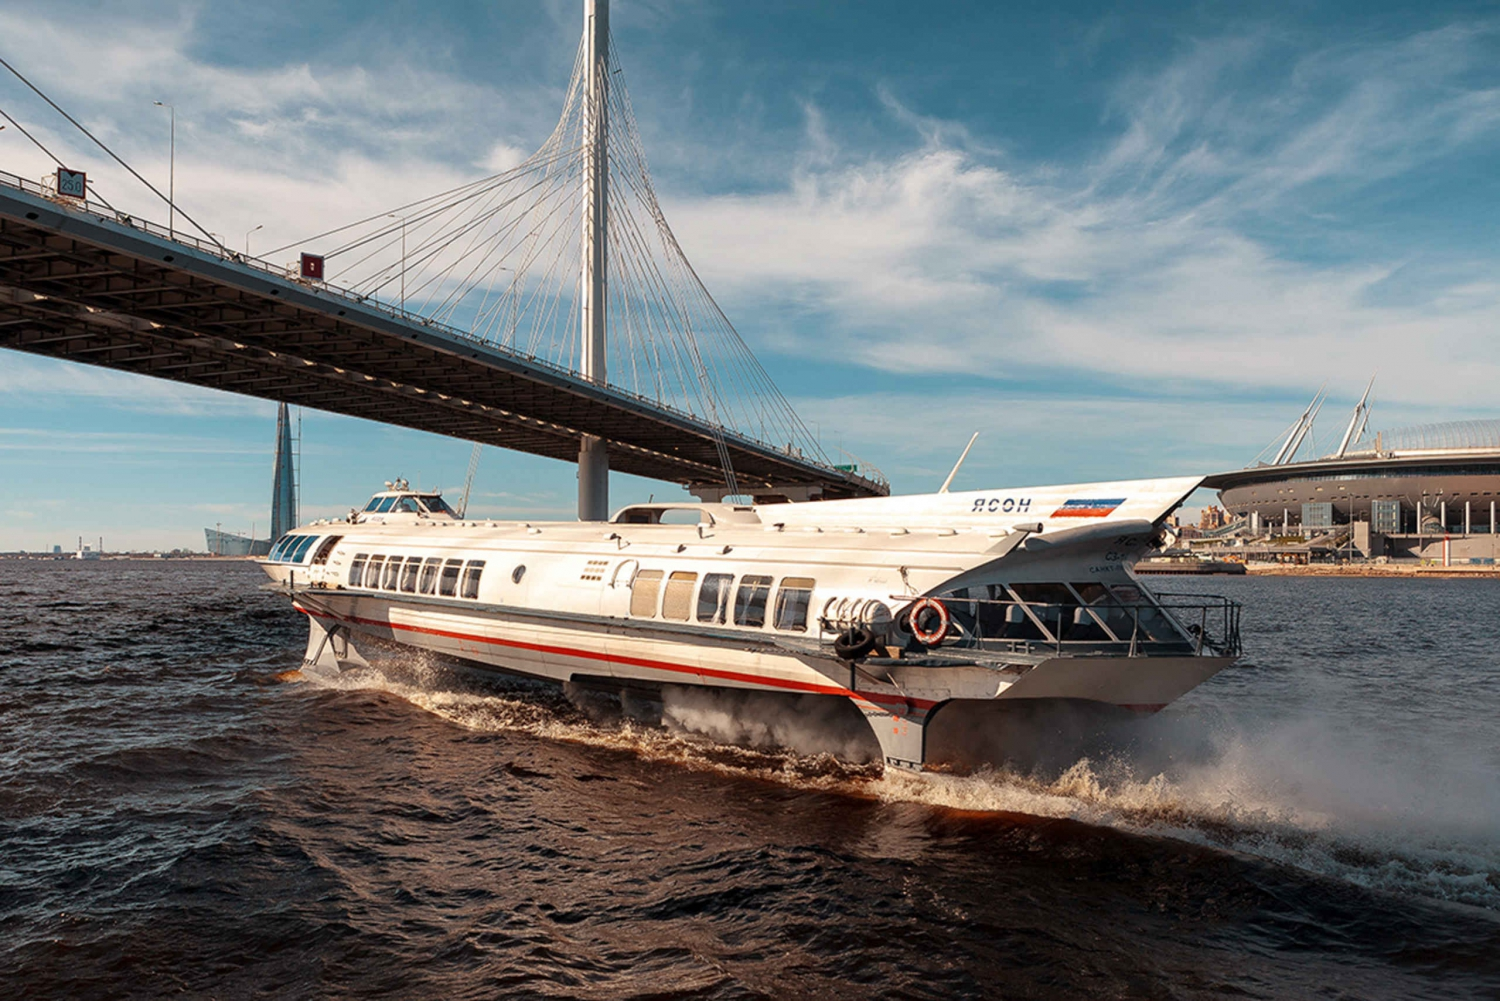 Hydrofoil Trip & Excursion in Kronstadt